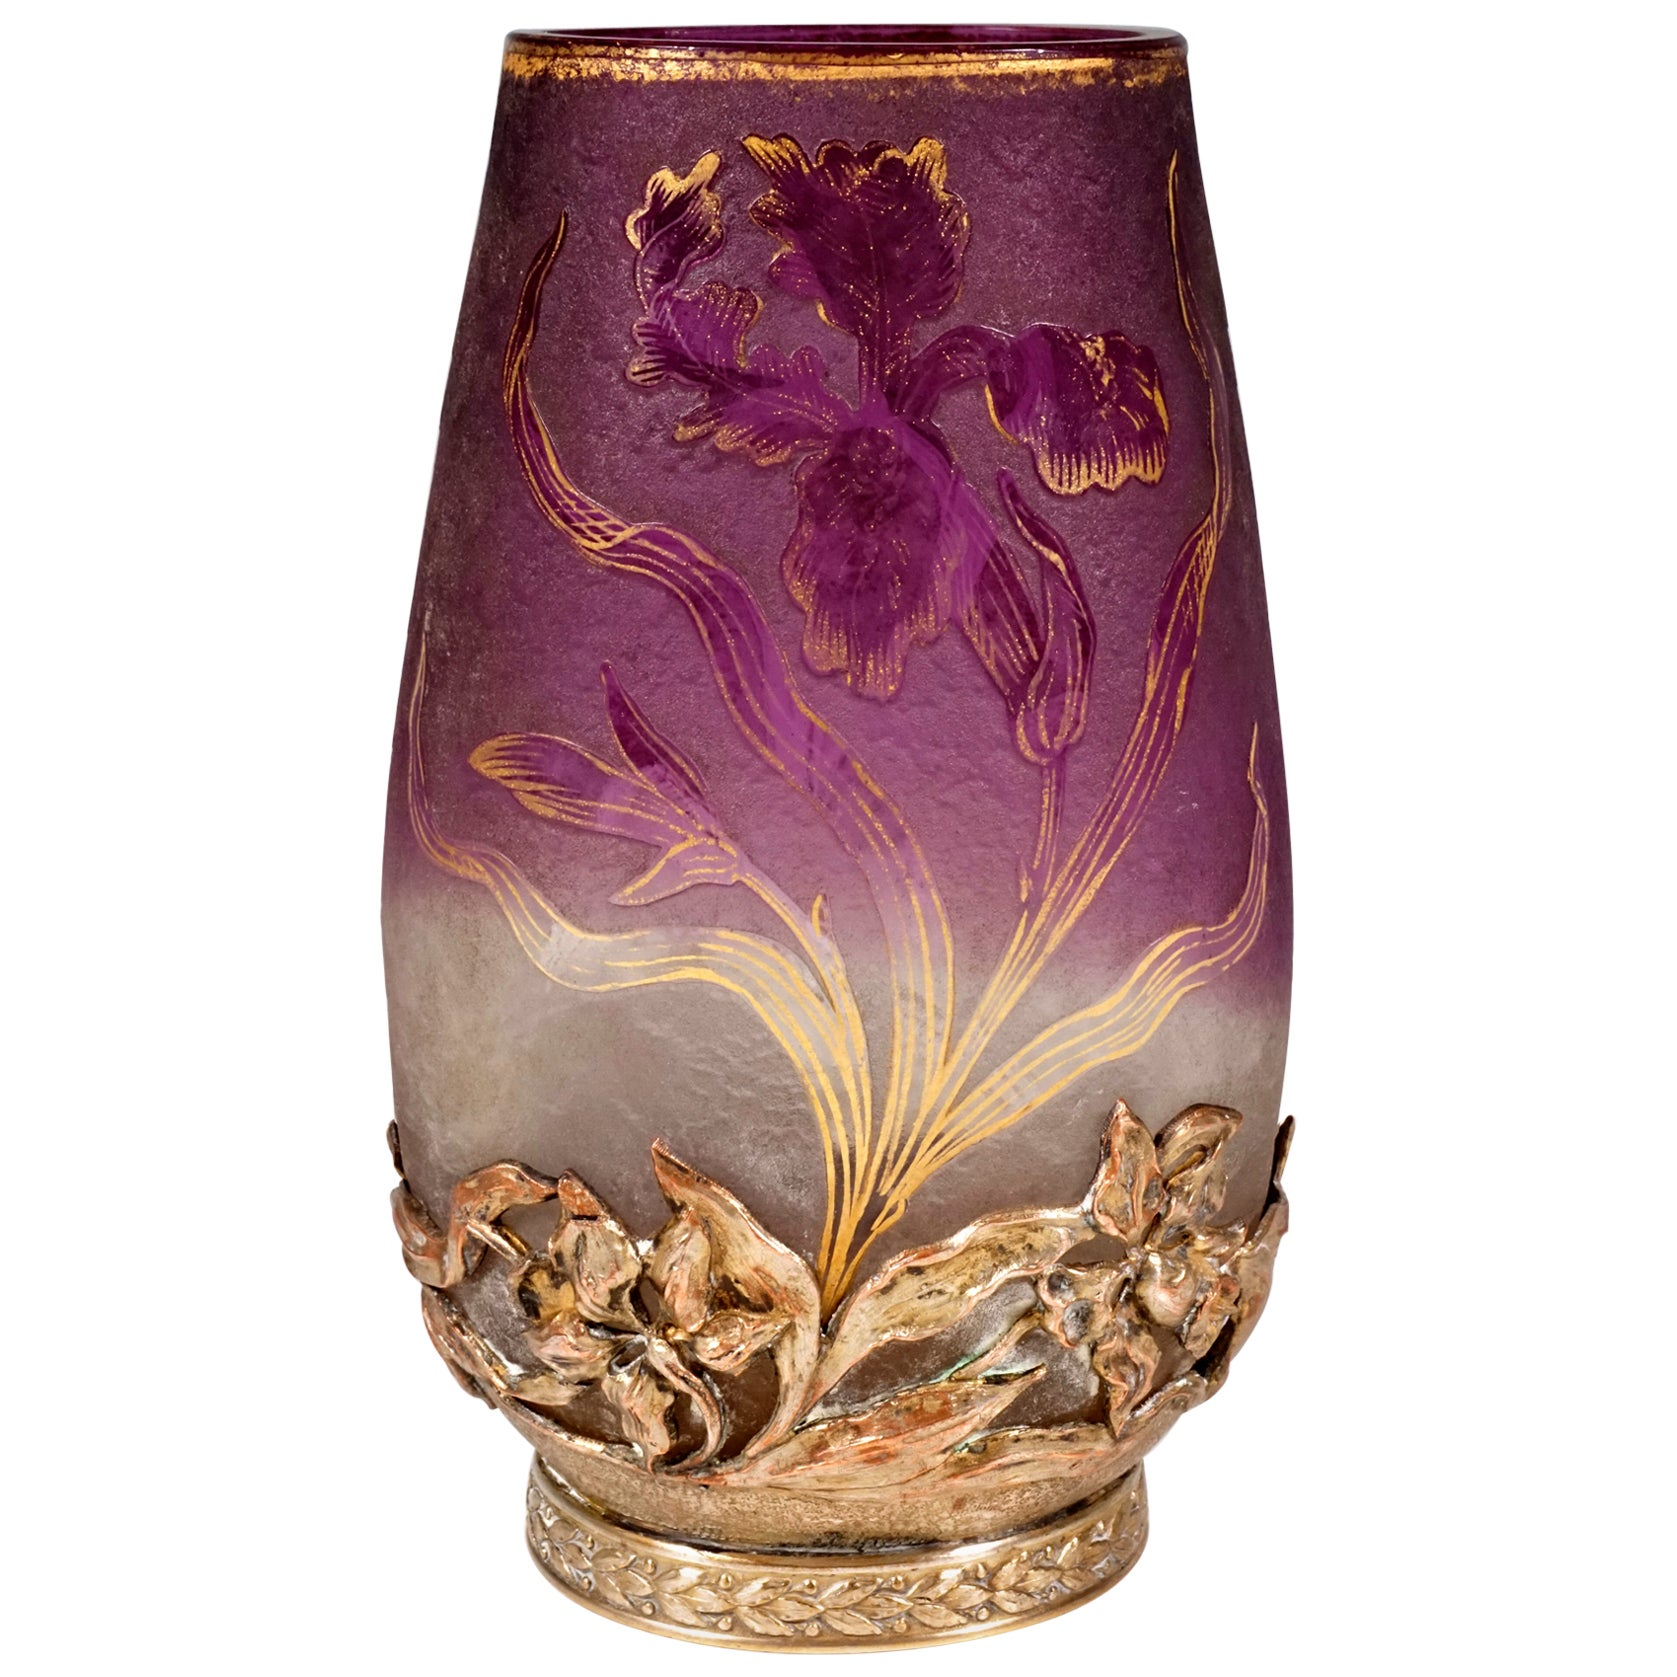 Art Nouveau Cameo Vase with Iris Decor & Mounting Daum Nancy, France, circa 1900